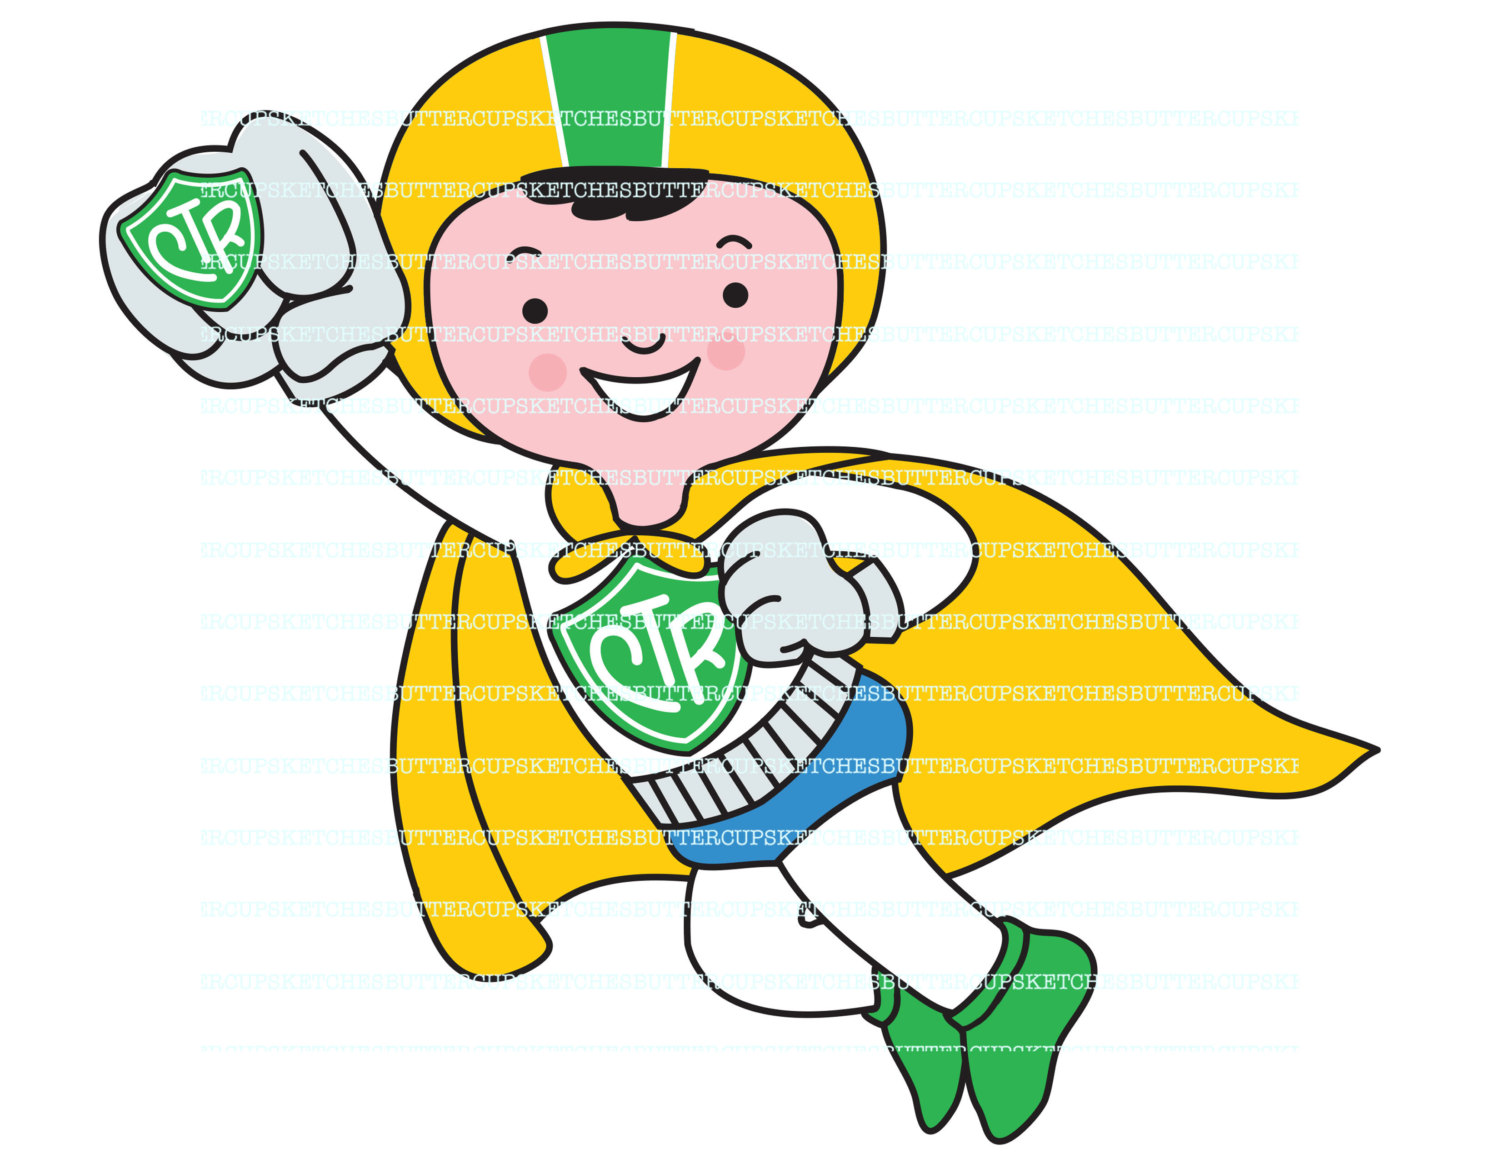 1500x1159 Lds Primary Ctr Superhero Theme From Buttercupsketches On Etsy Studio